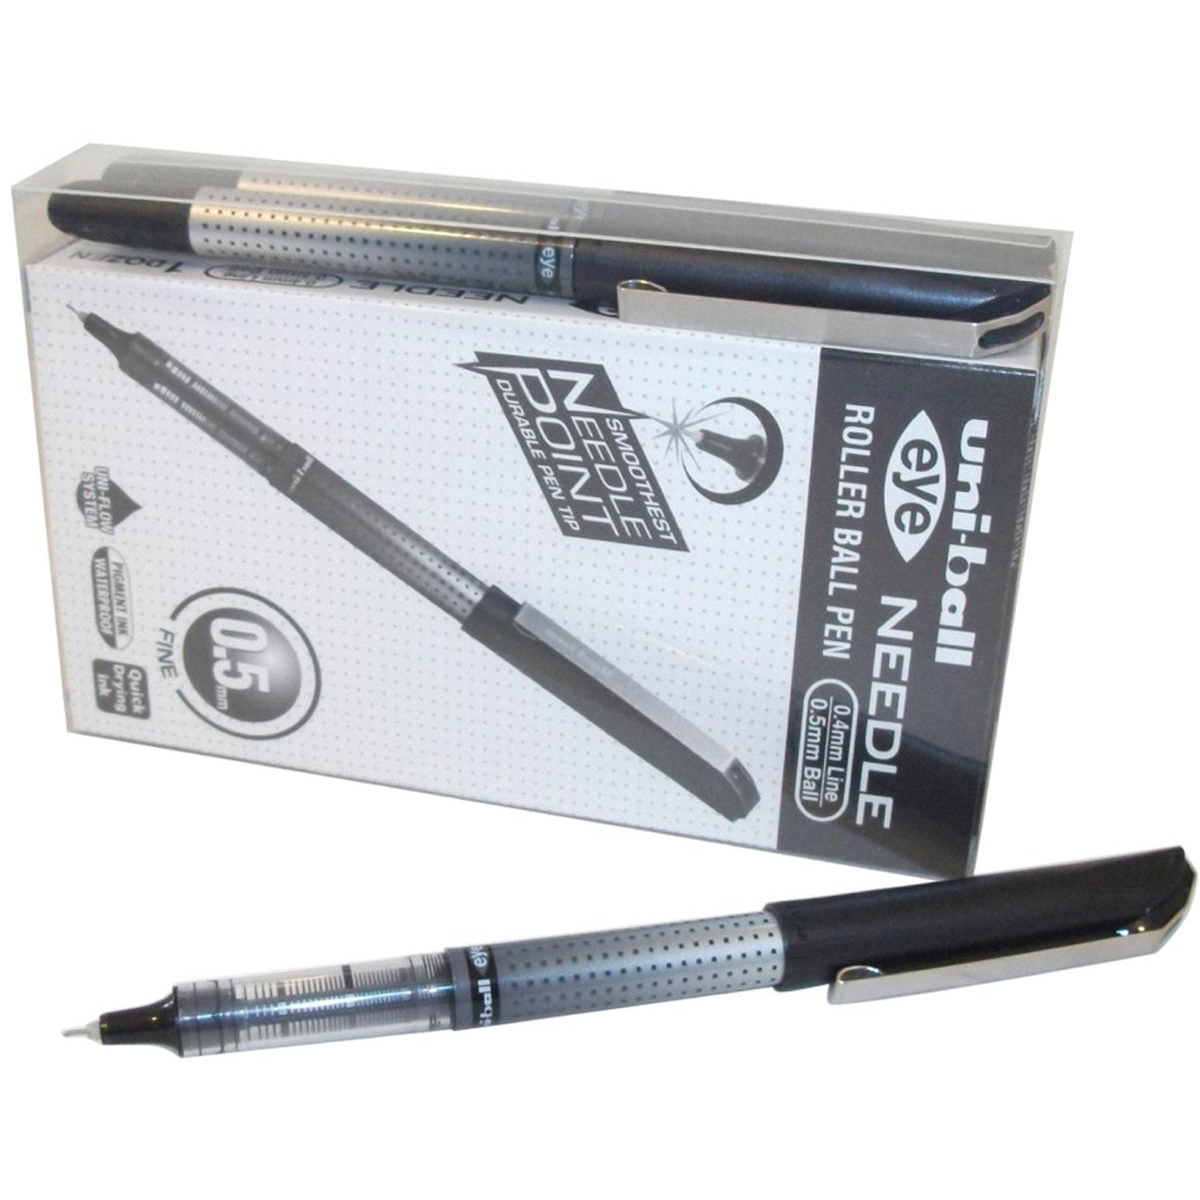 Uni-ball UB-185S Eye Needle Pen Stainless Steel Point Micro 0.5mm Tip Black Ref 153528382[Pack 14 for 12]